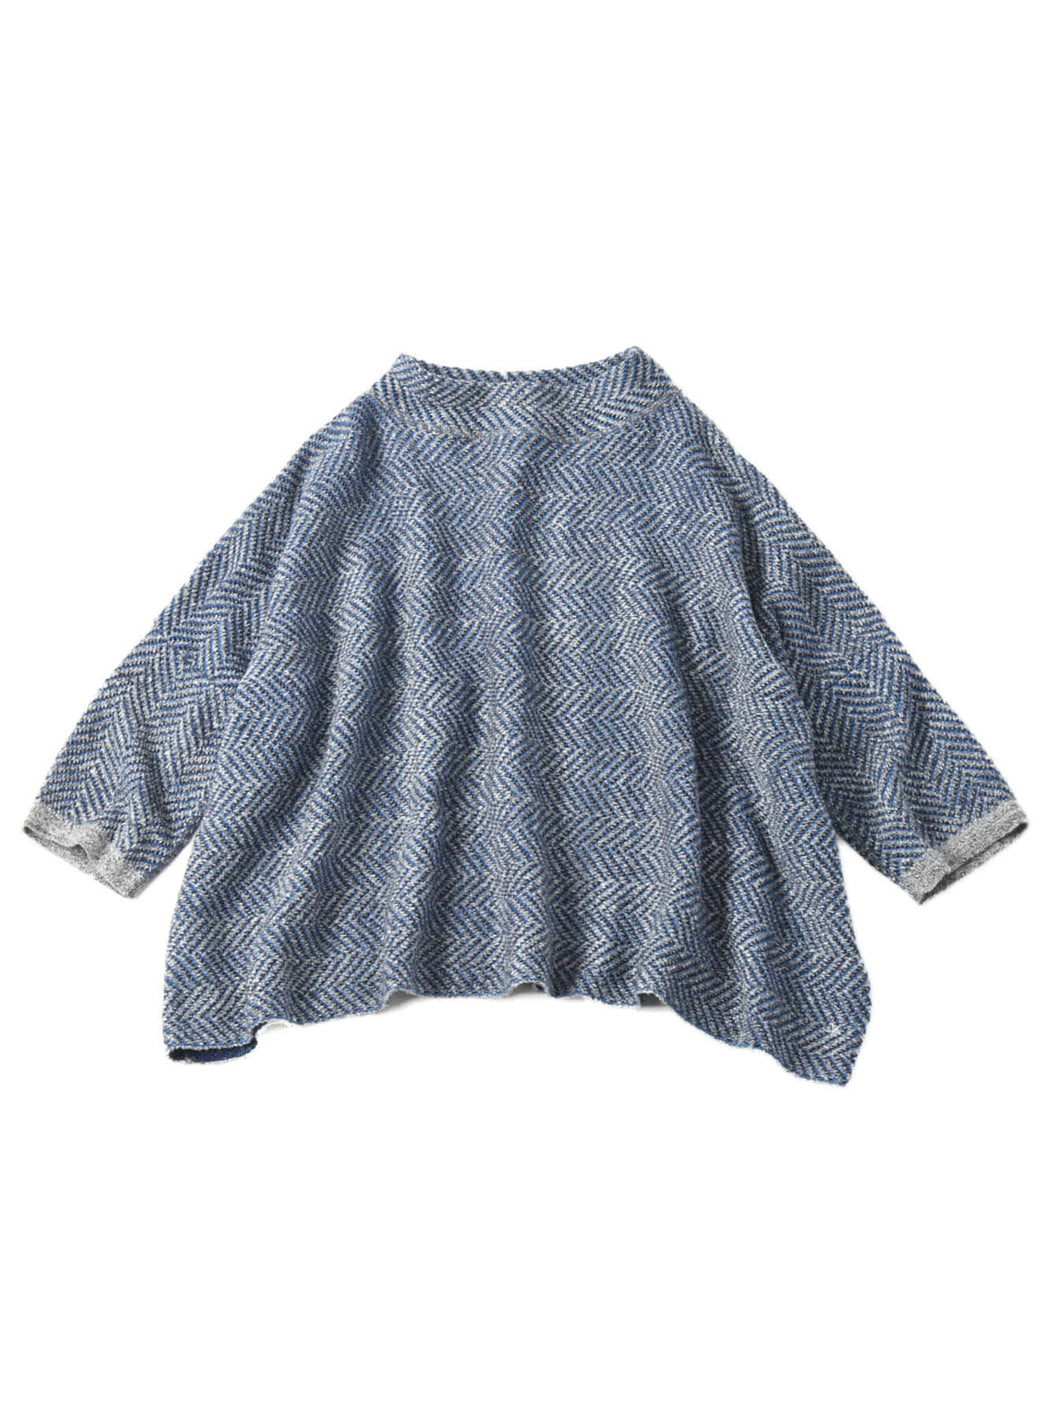 Indigo Cotton Herringbone Jacquard Big T-shirt in indigo